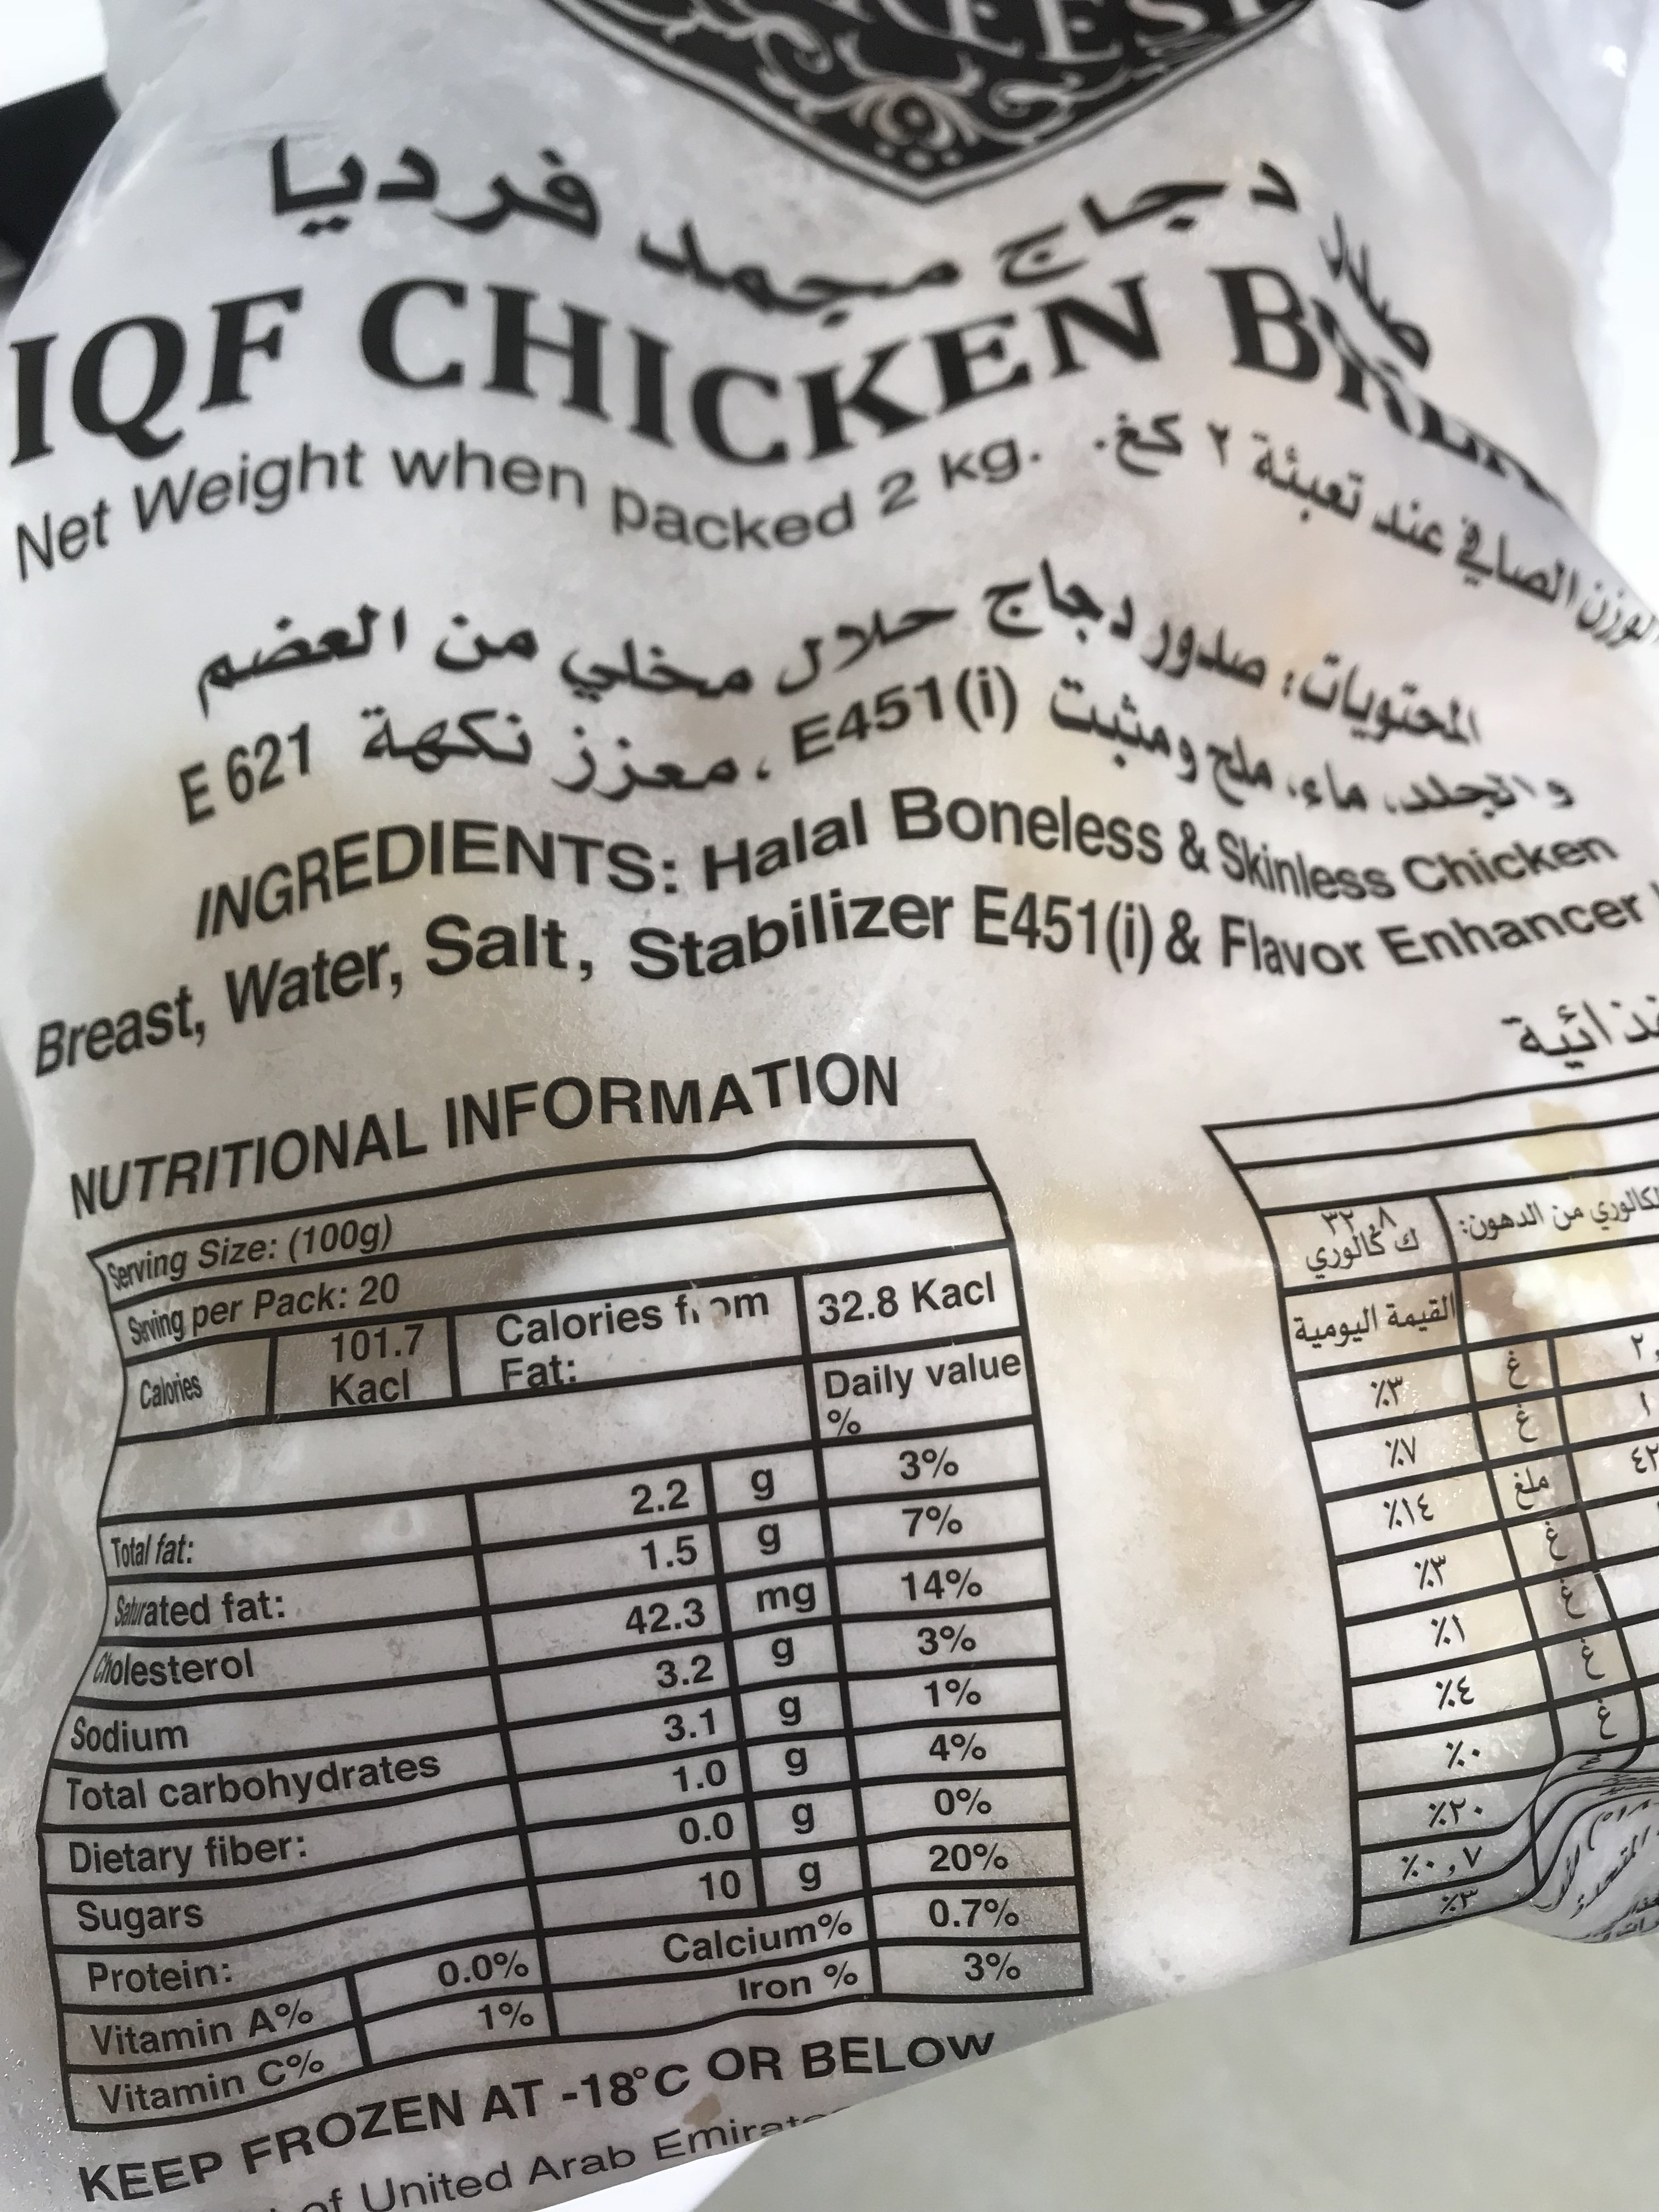 Why This Chicken Breast Nutrition Label Is Only 10g Of Protein Per 100g Myfitnesspal Com